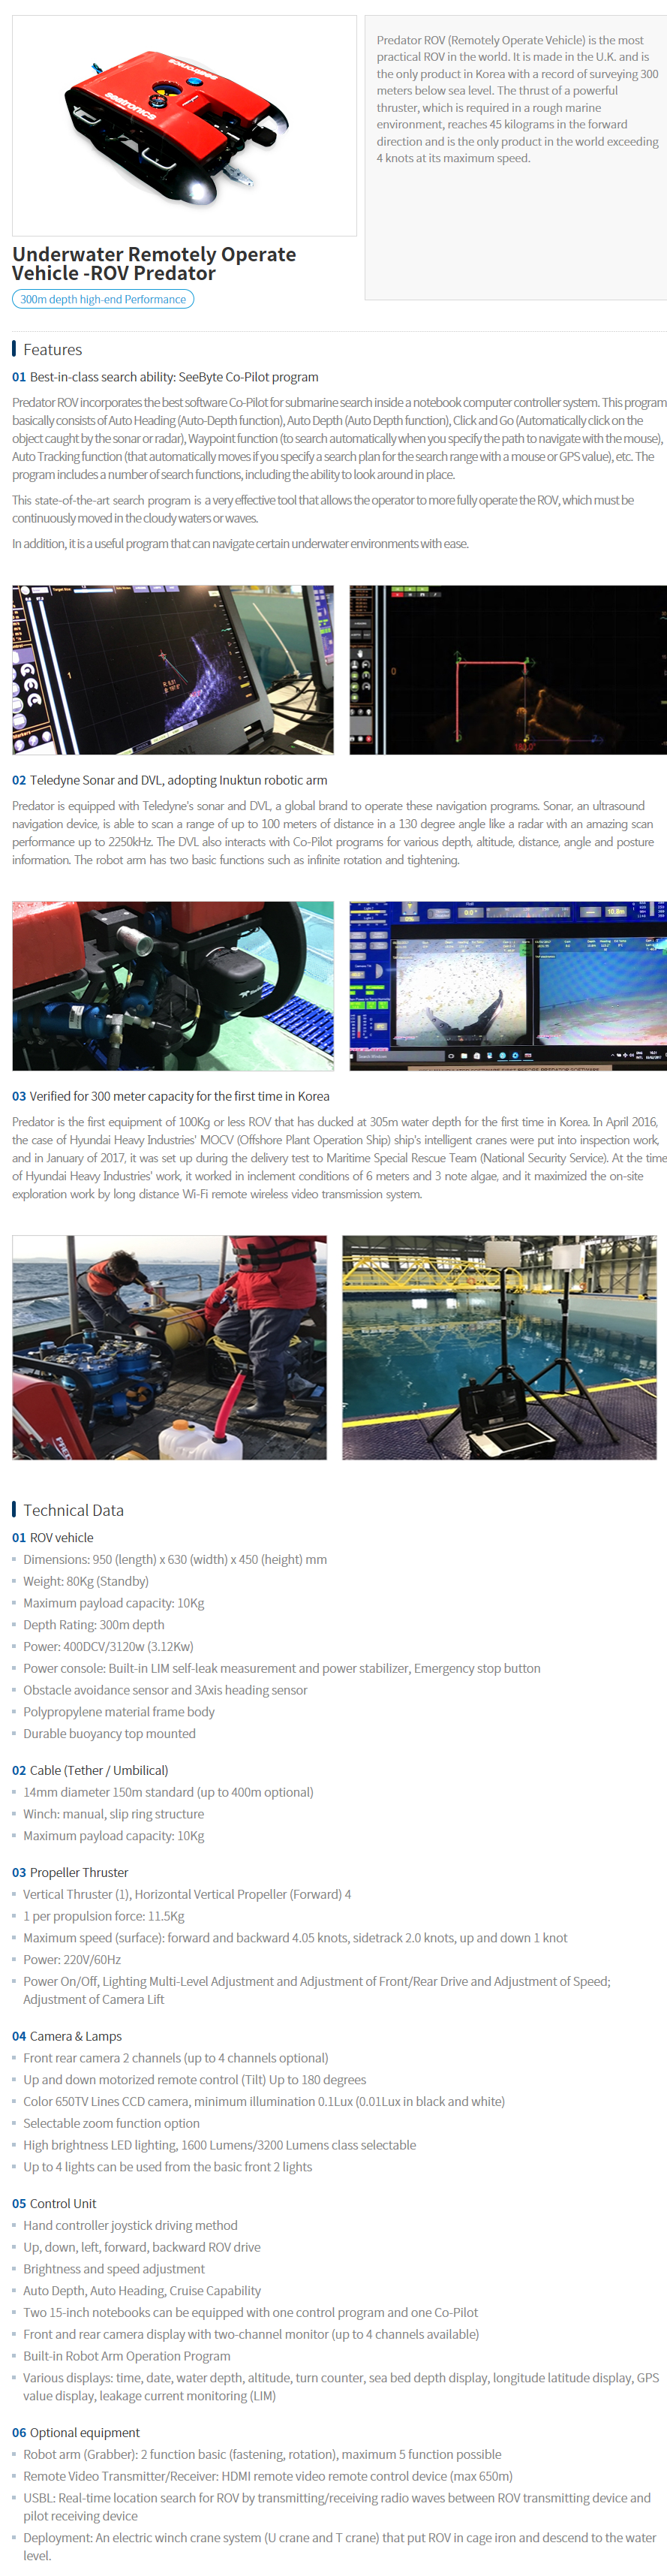 Top Electronics Ind Underwater Remotely Operate Vehicle - ROV Predator